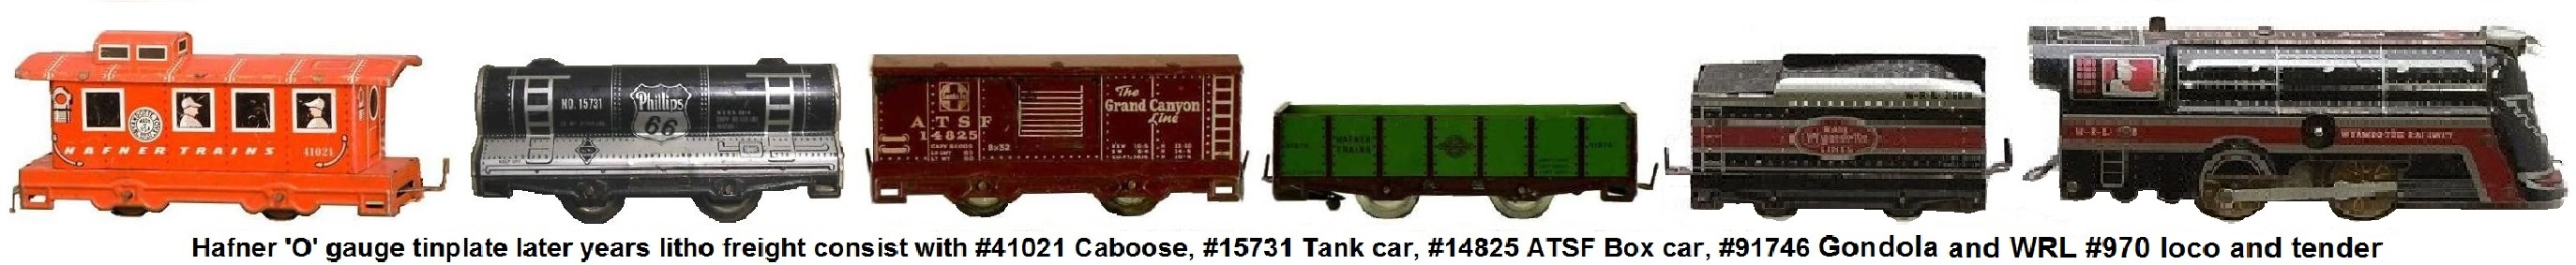 Hafner 'O' gauge mixed freight consist of later Wyandotte 4 wheel tinplate lithographed cars and the Wyandotte #970 Locomotive and tender